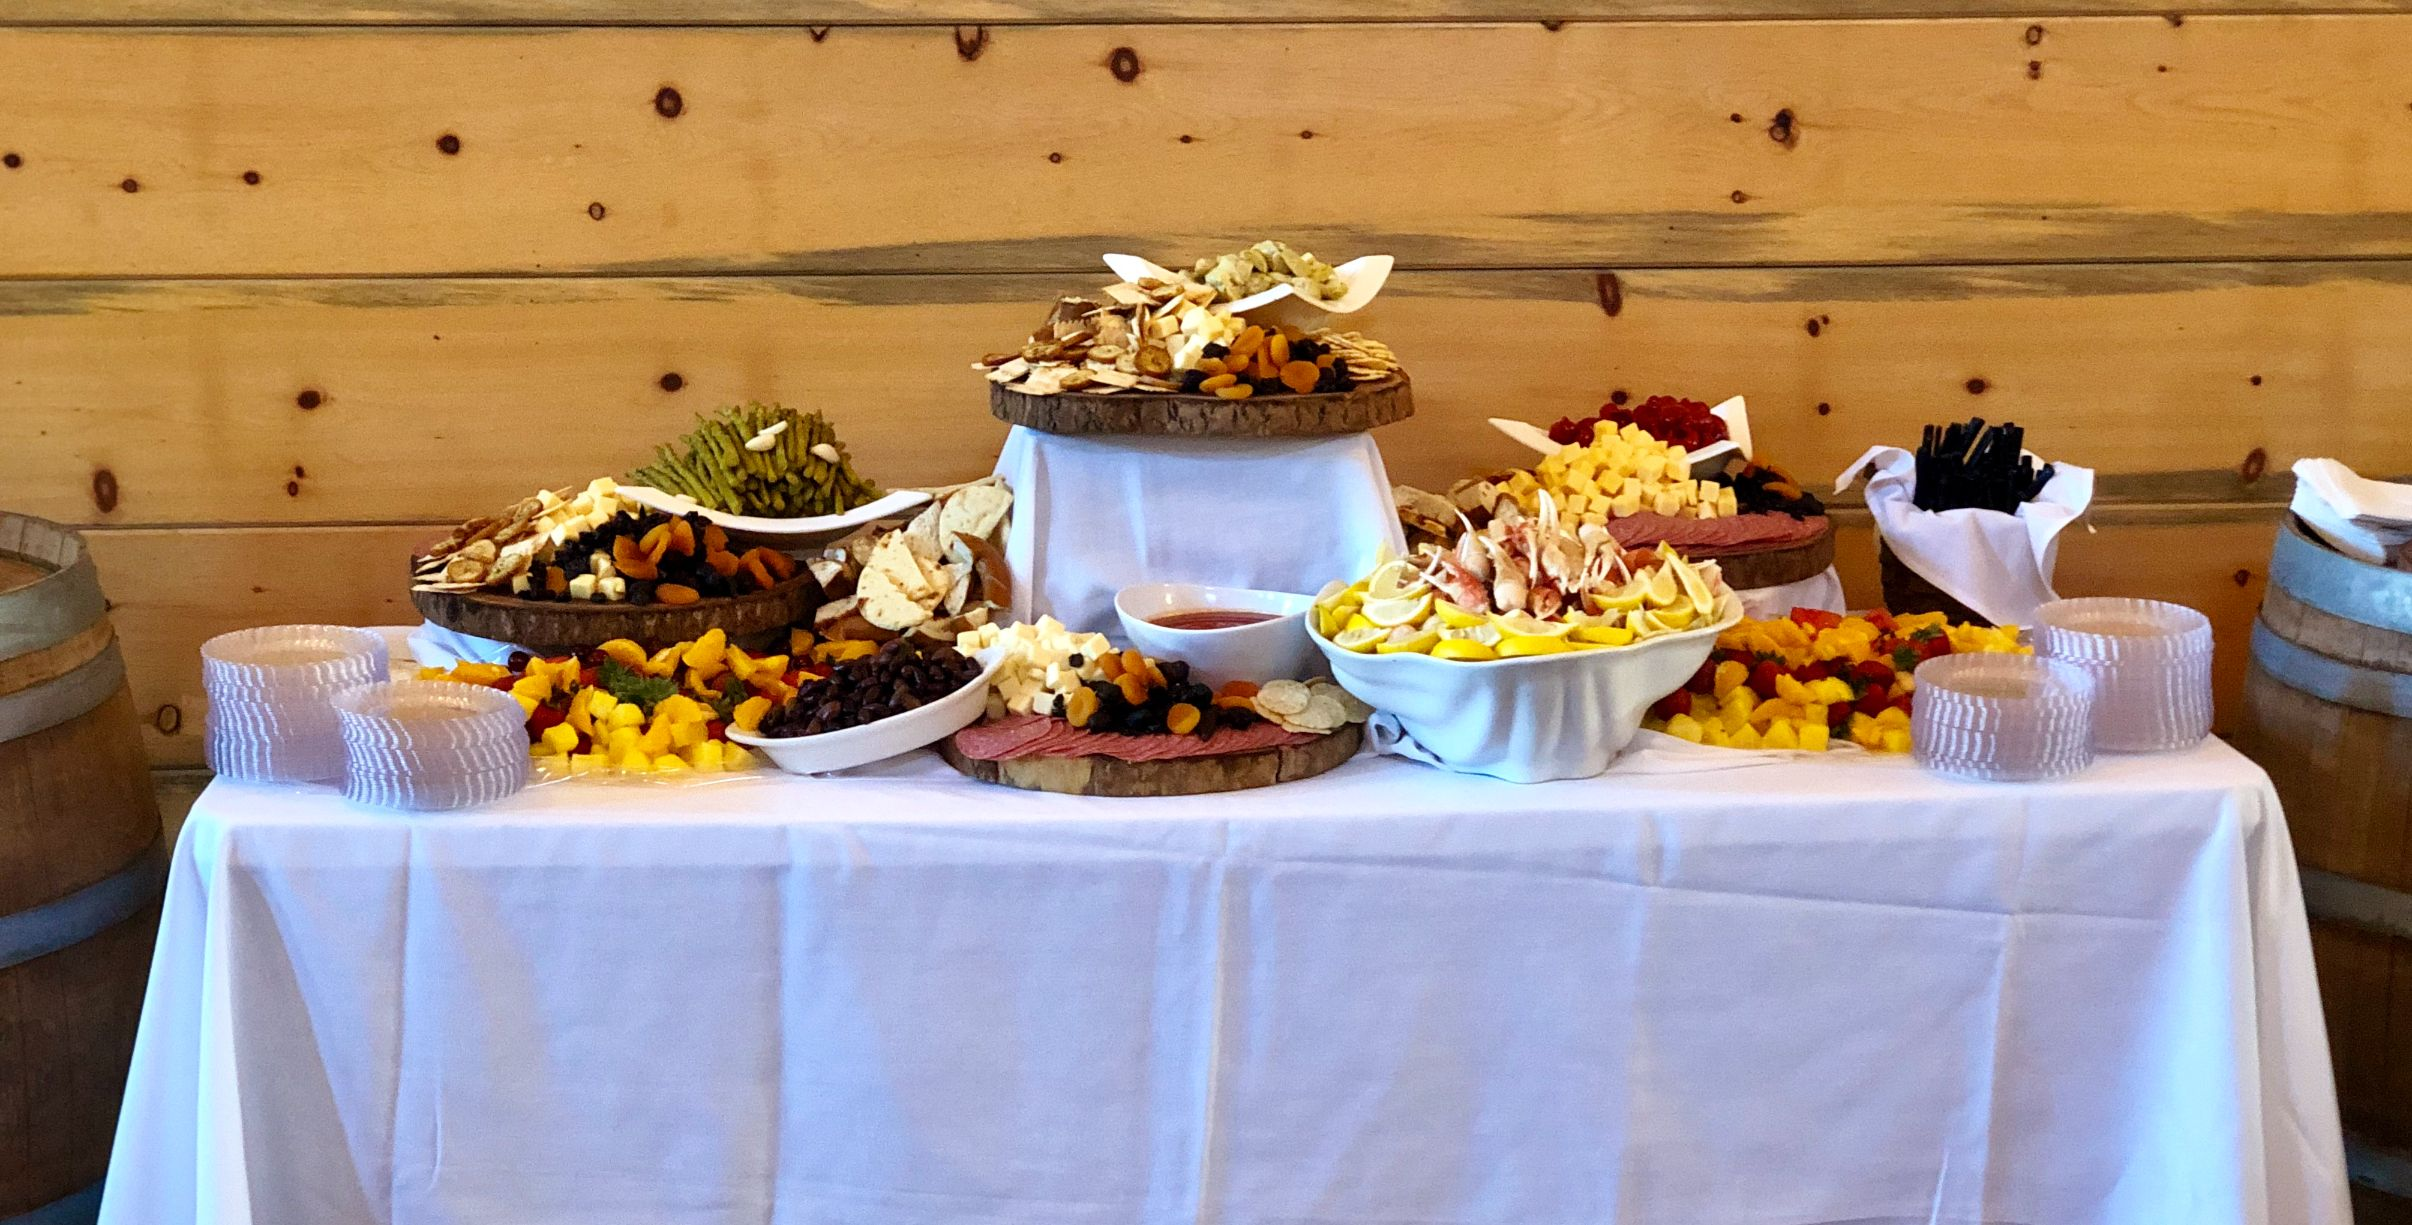 table setup for a party with assorted foods